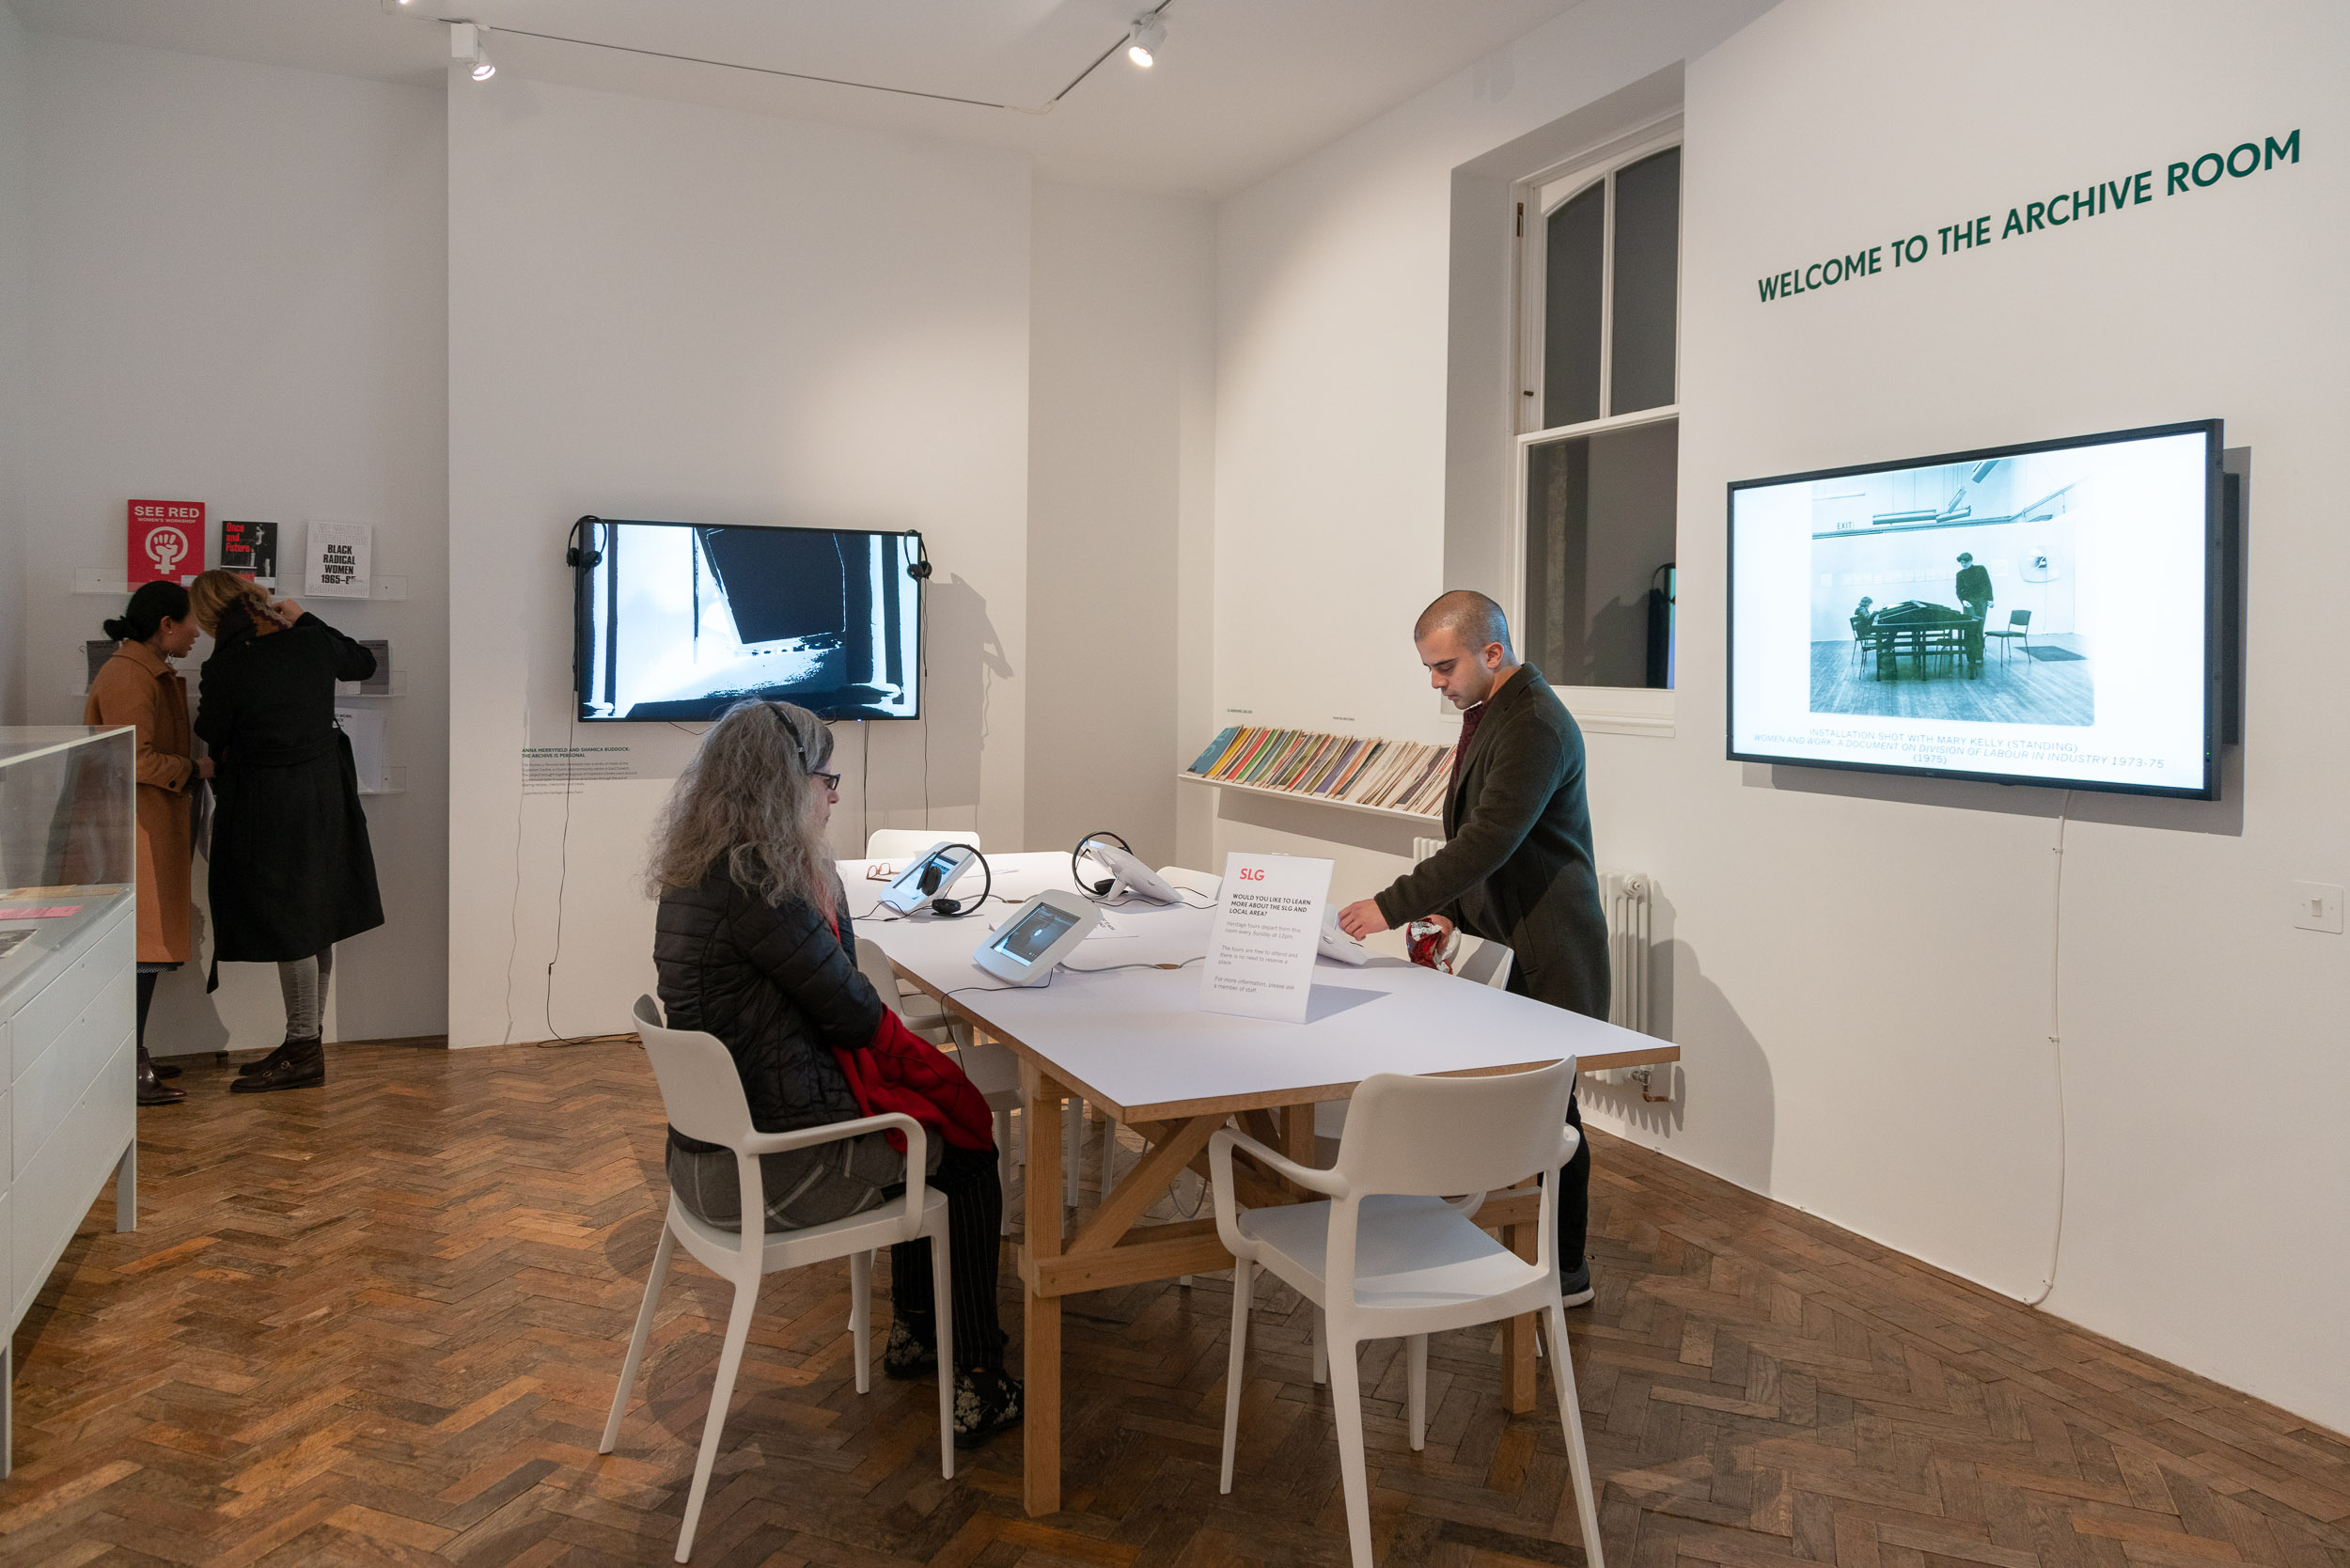 People looking at screens and works which are displayed on a white table